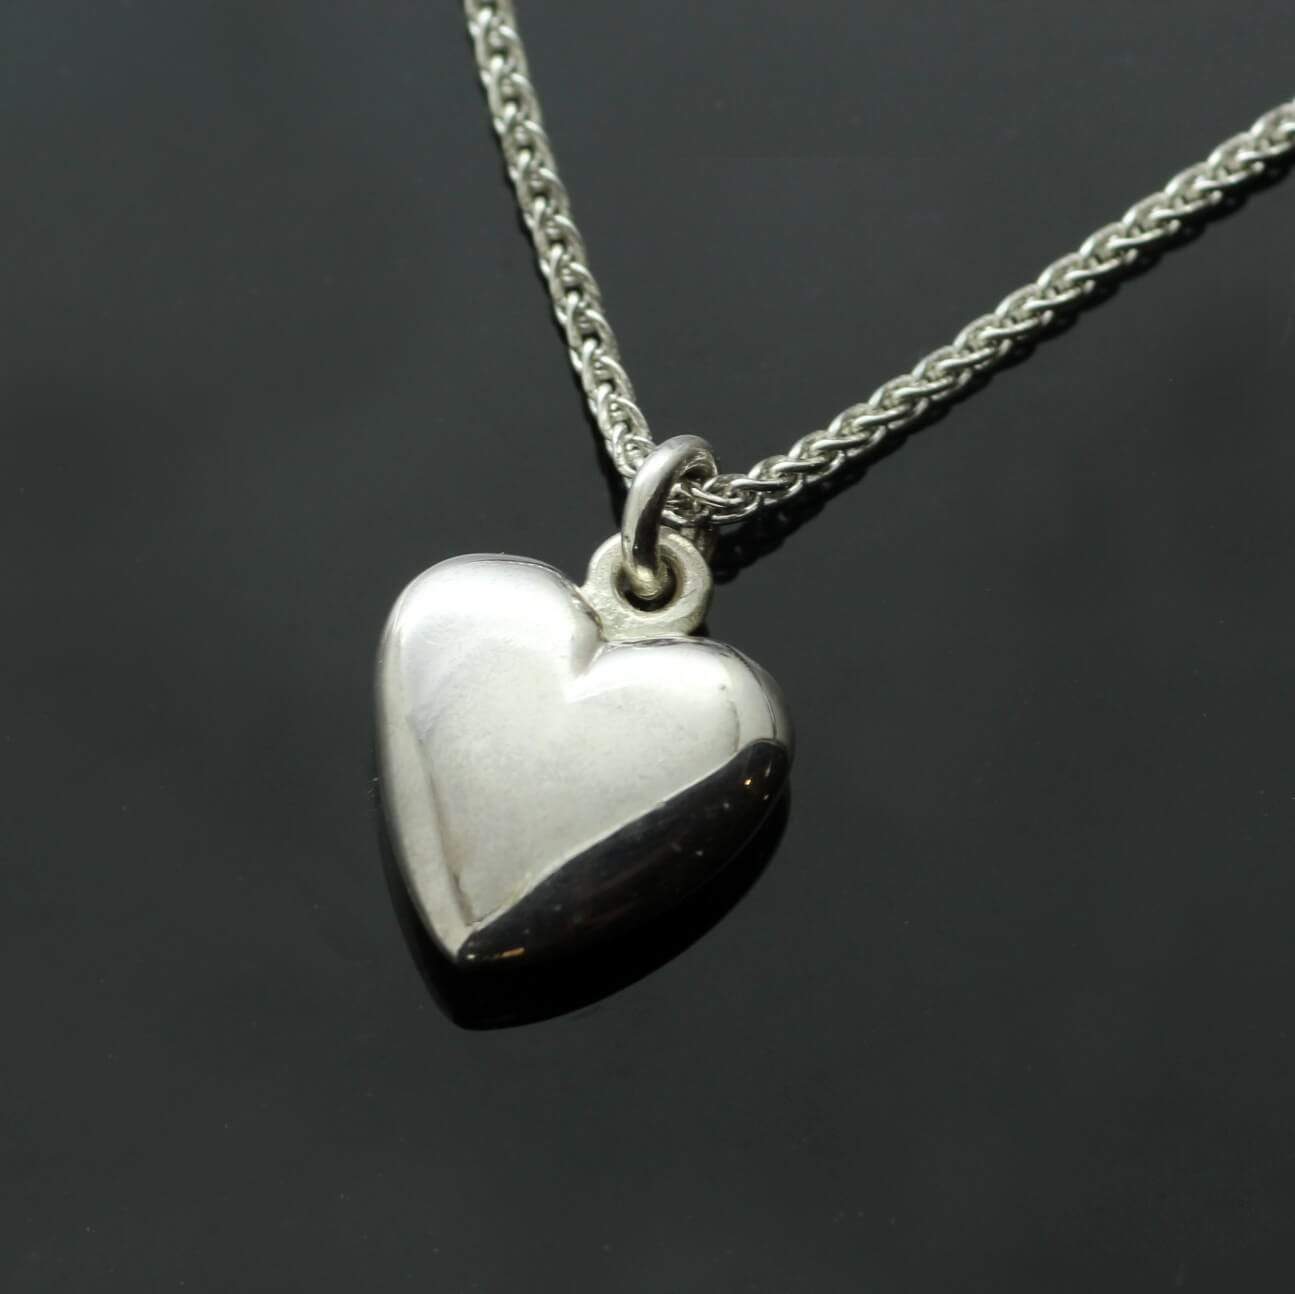 Contemporary Heart charm handmade solid Sterling Silver hallmarked